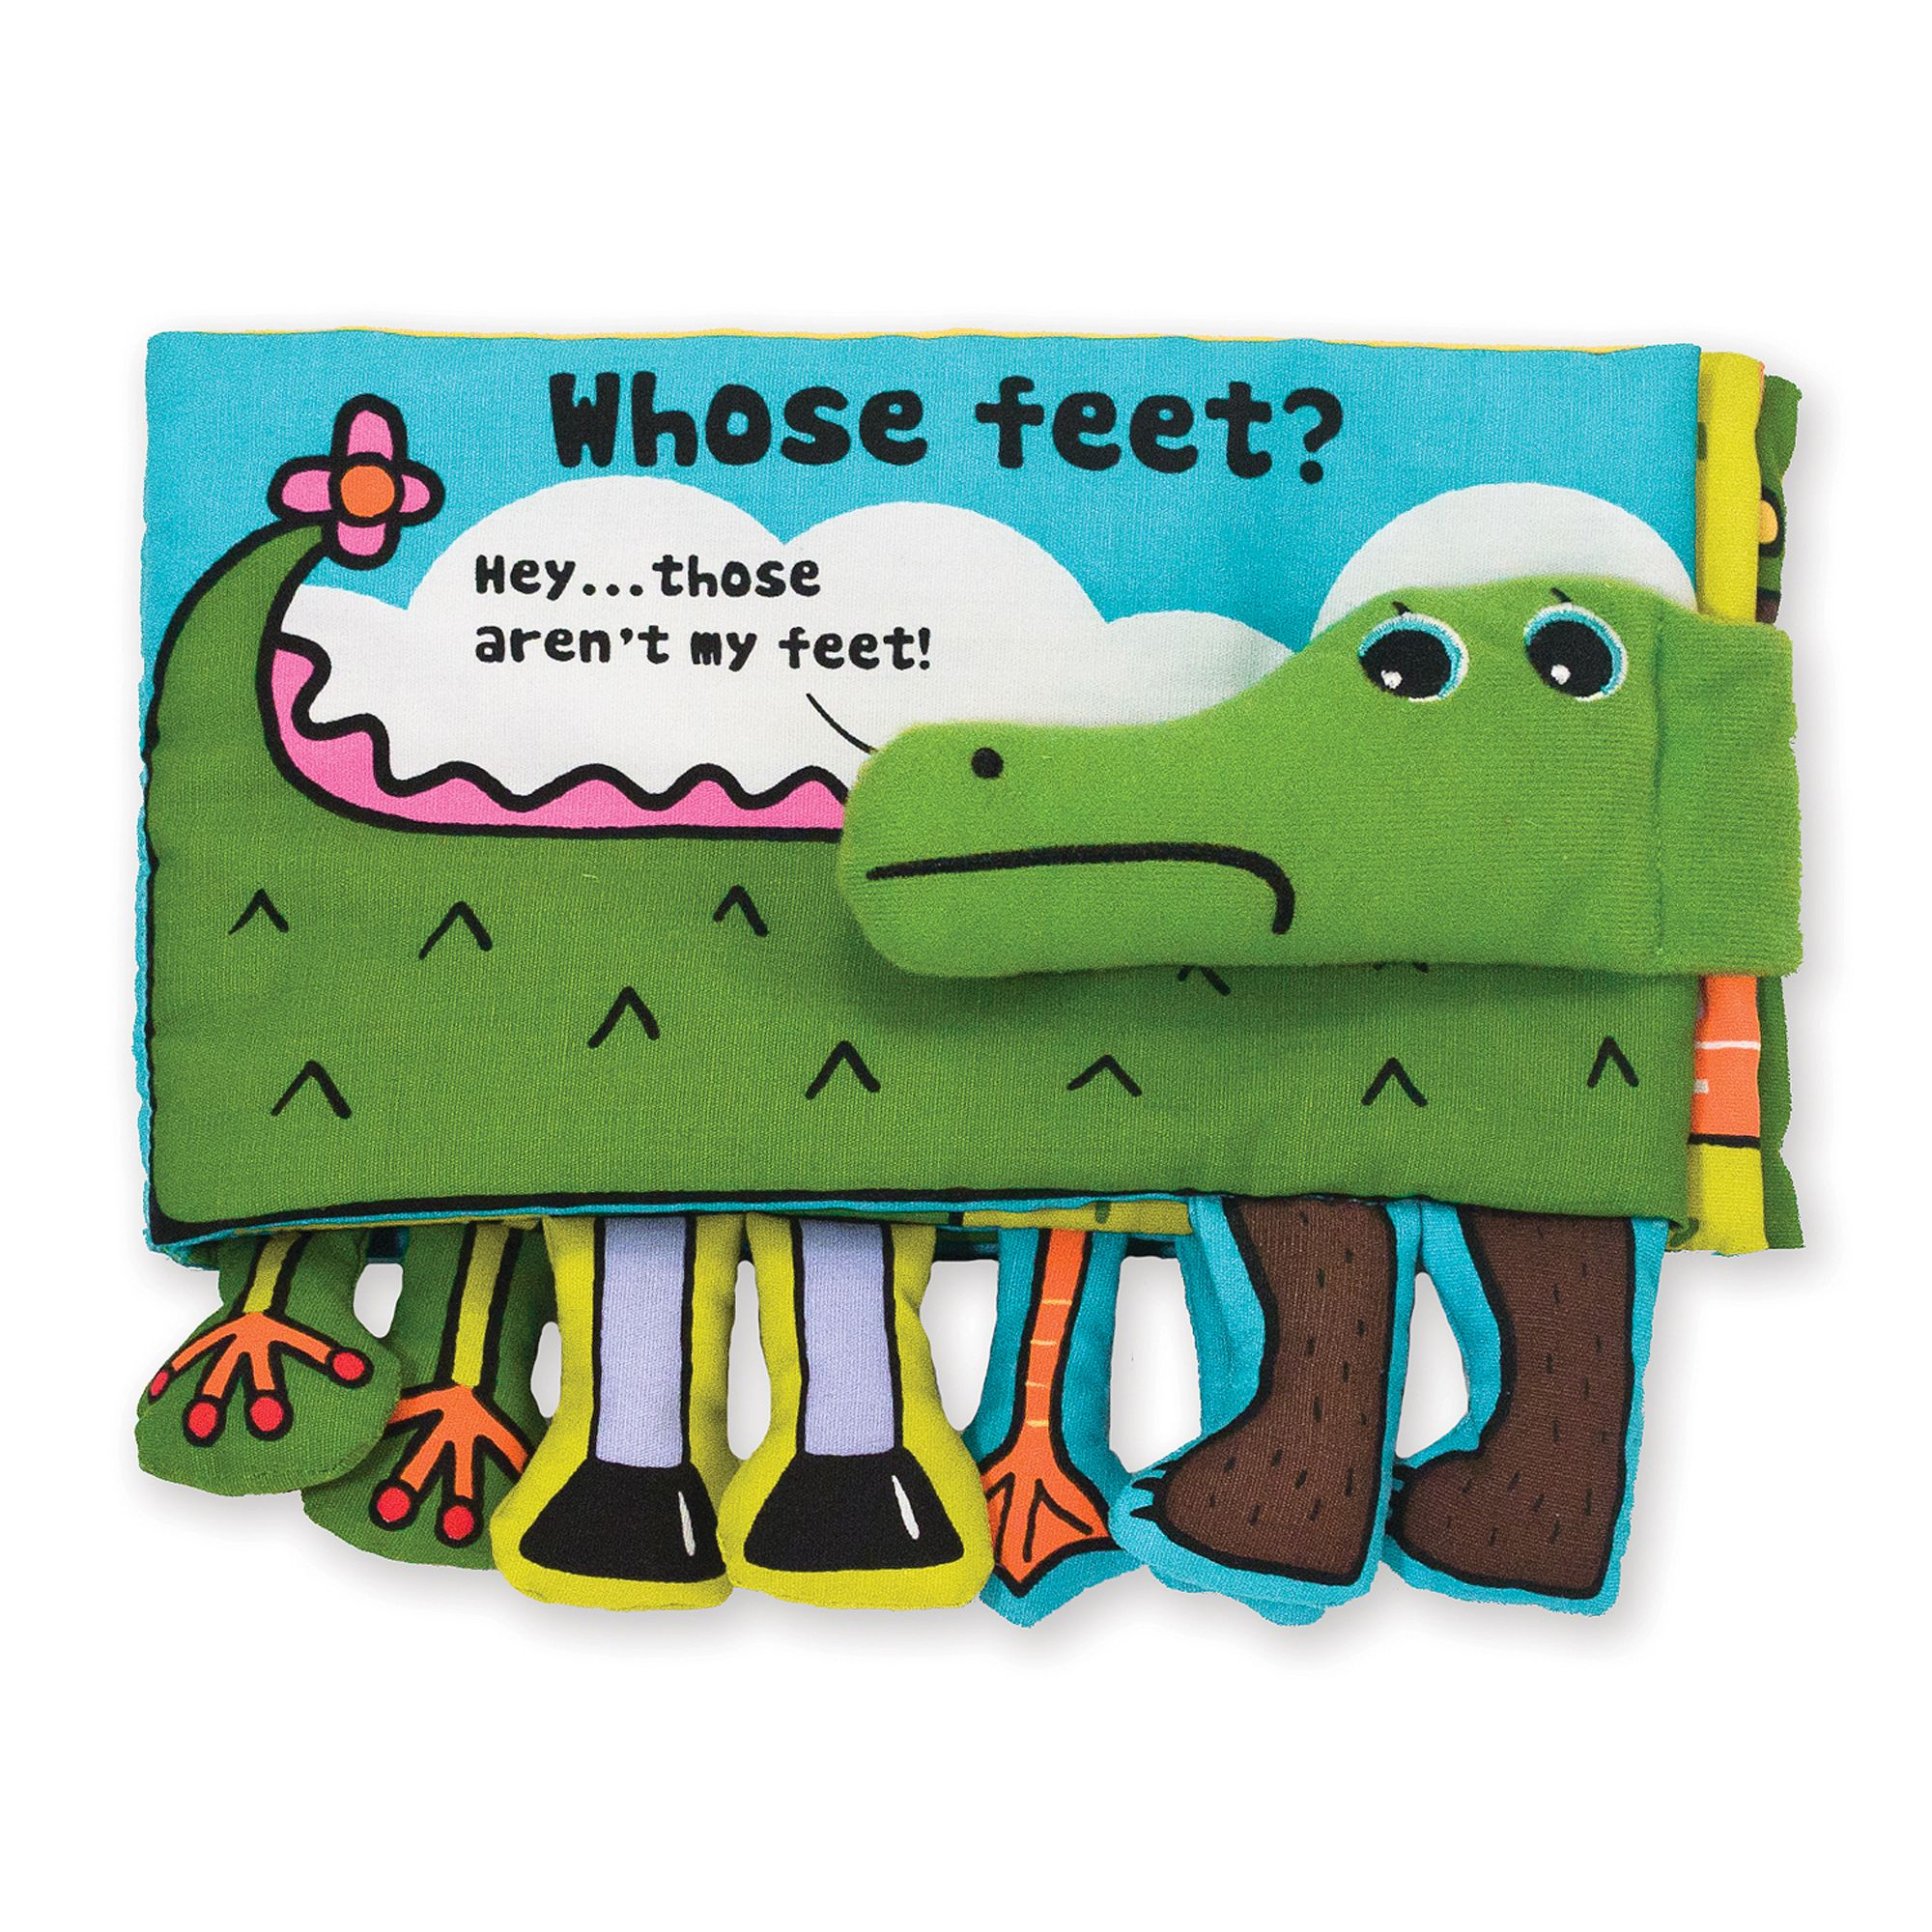 Crocodile can't find his feet! Turn the pages to find out whose feet are down below-and enjoy Crocodile's fancy footwork! This squeaking, crinkling, foot-filled cloth book from Melissa & Doug K's Kids is durably constructed to last through story time, playtime, and the washing machine, too!